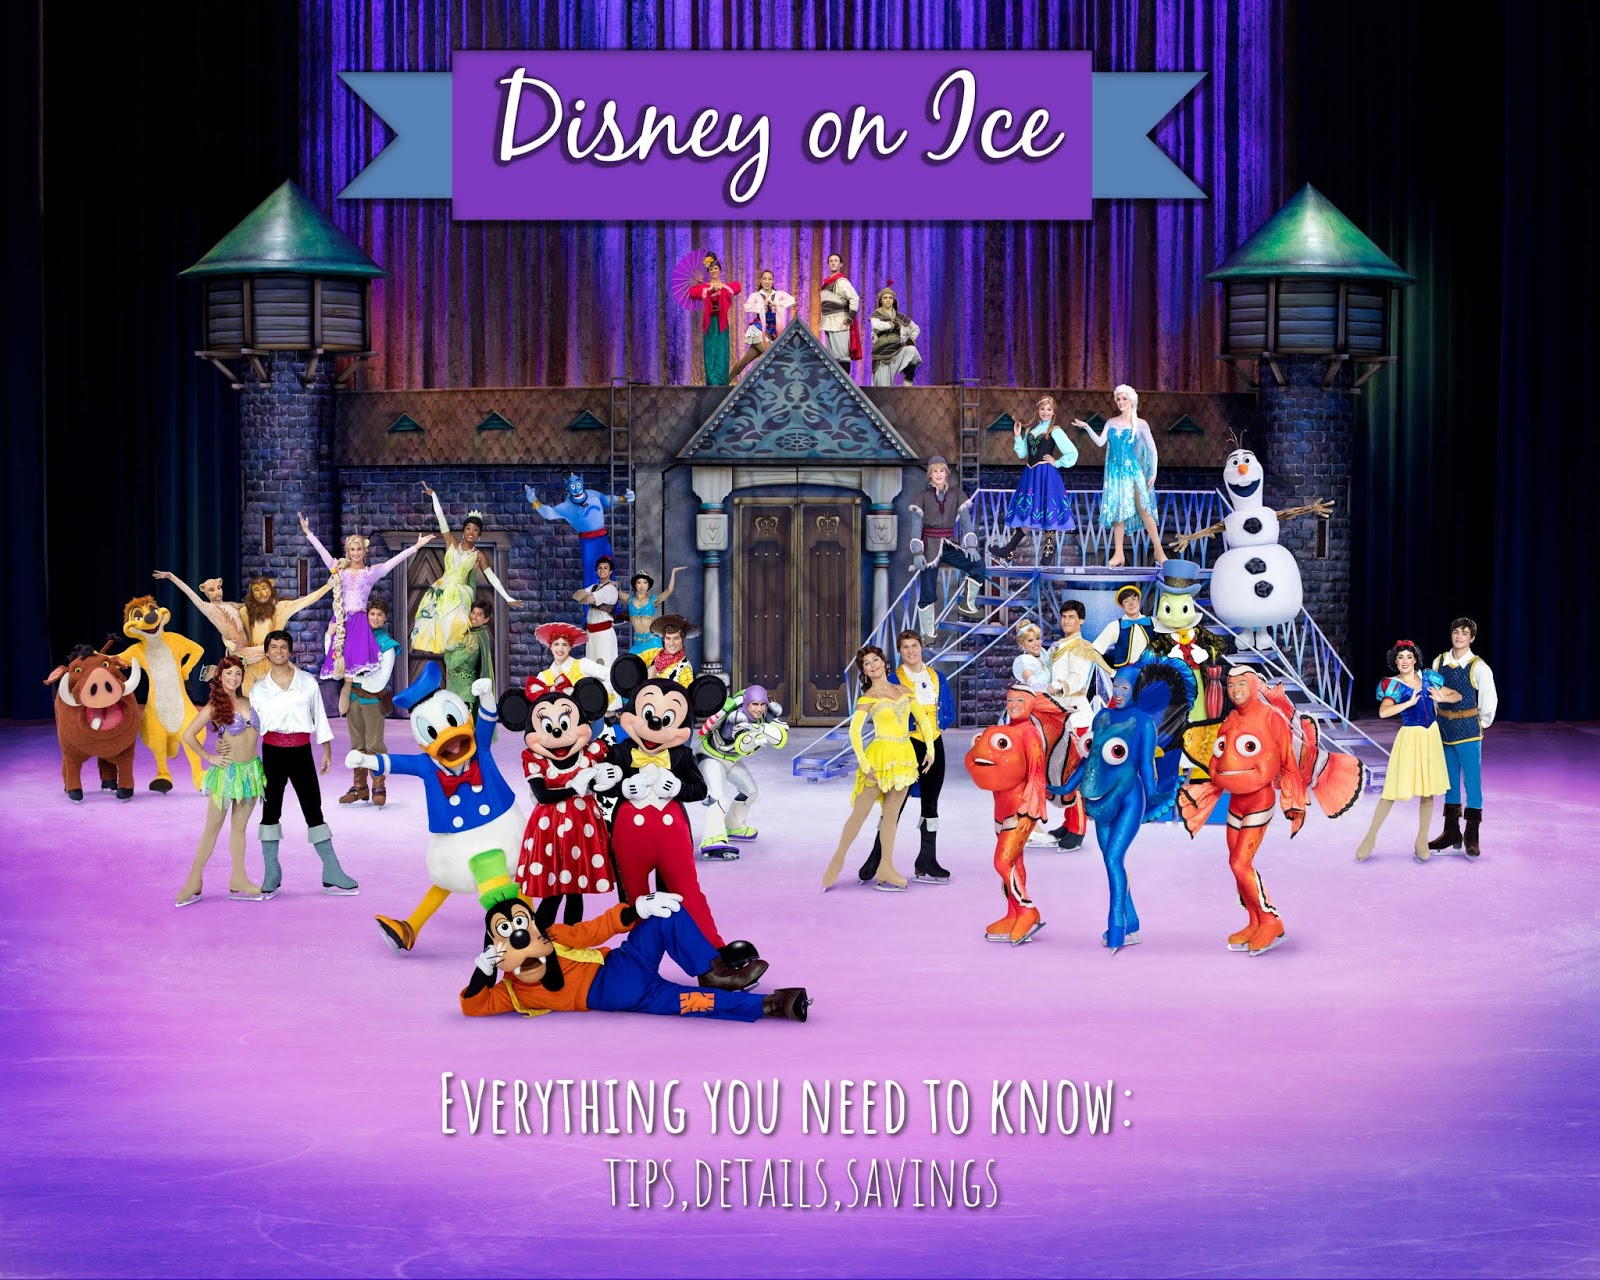 Carefree Blonde Spring Family Activities In Atlanta Disney On Ice